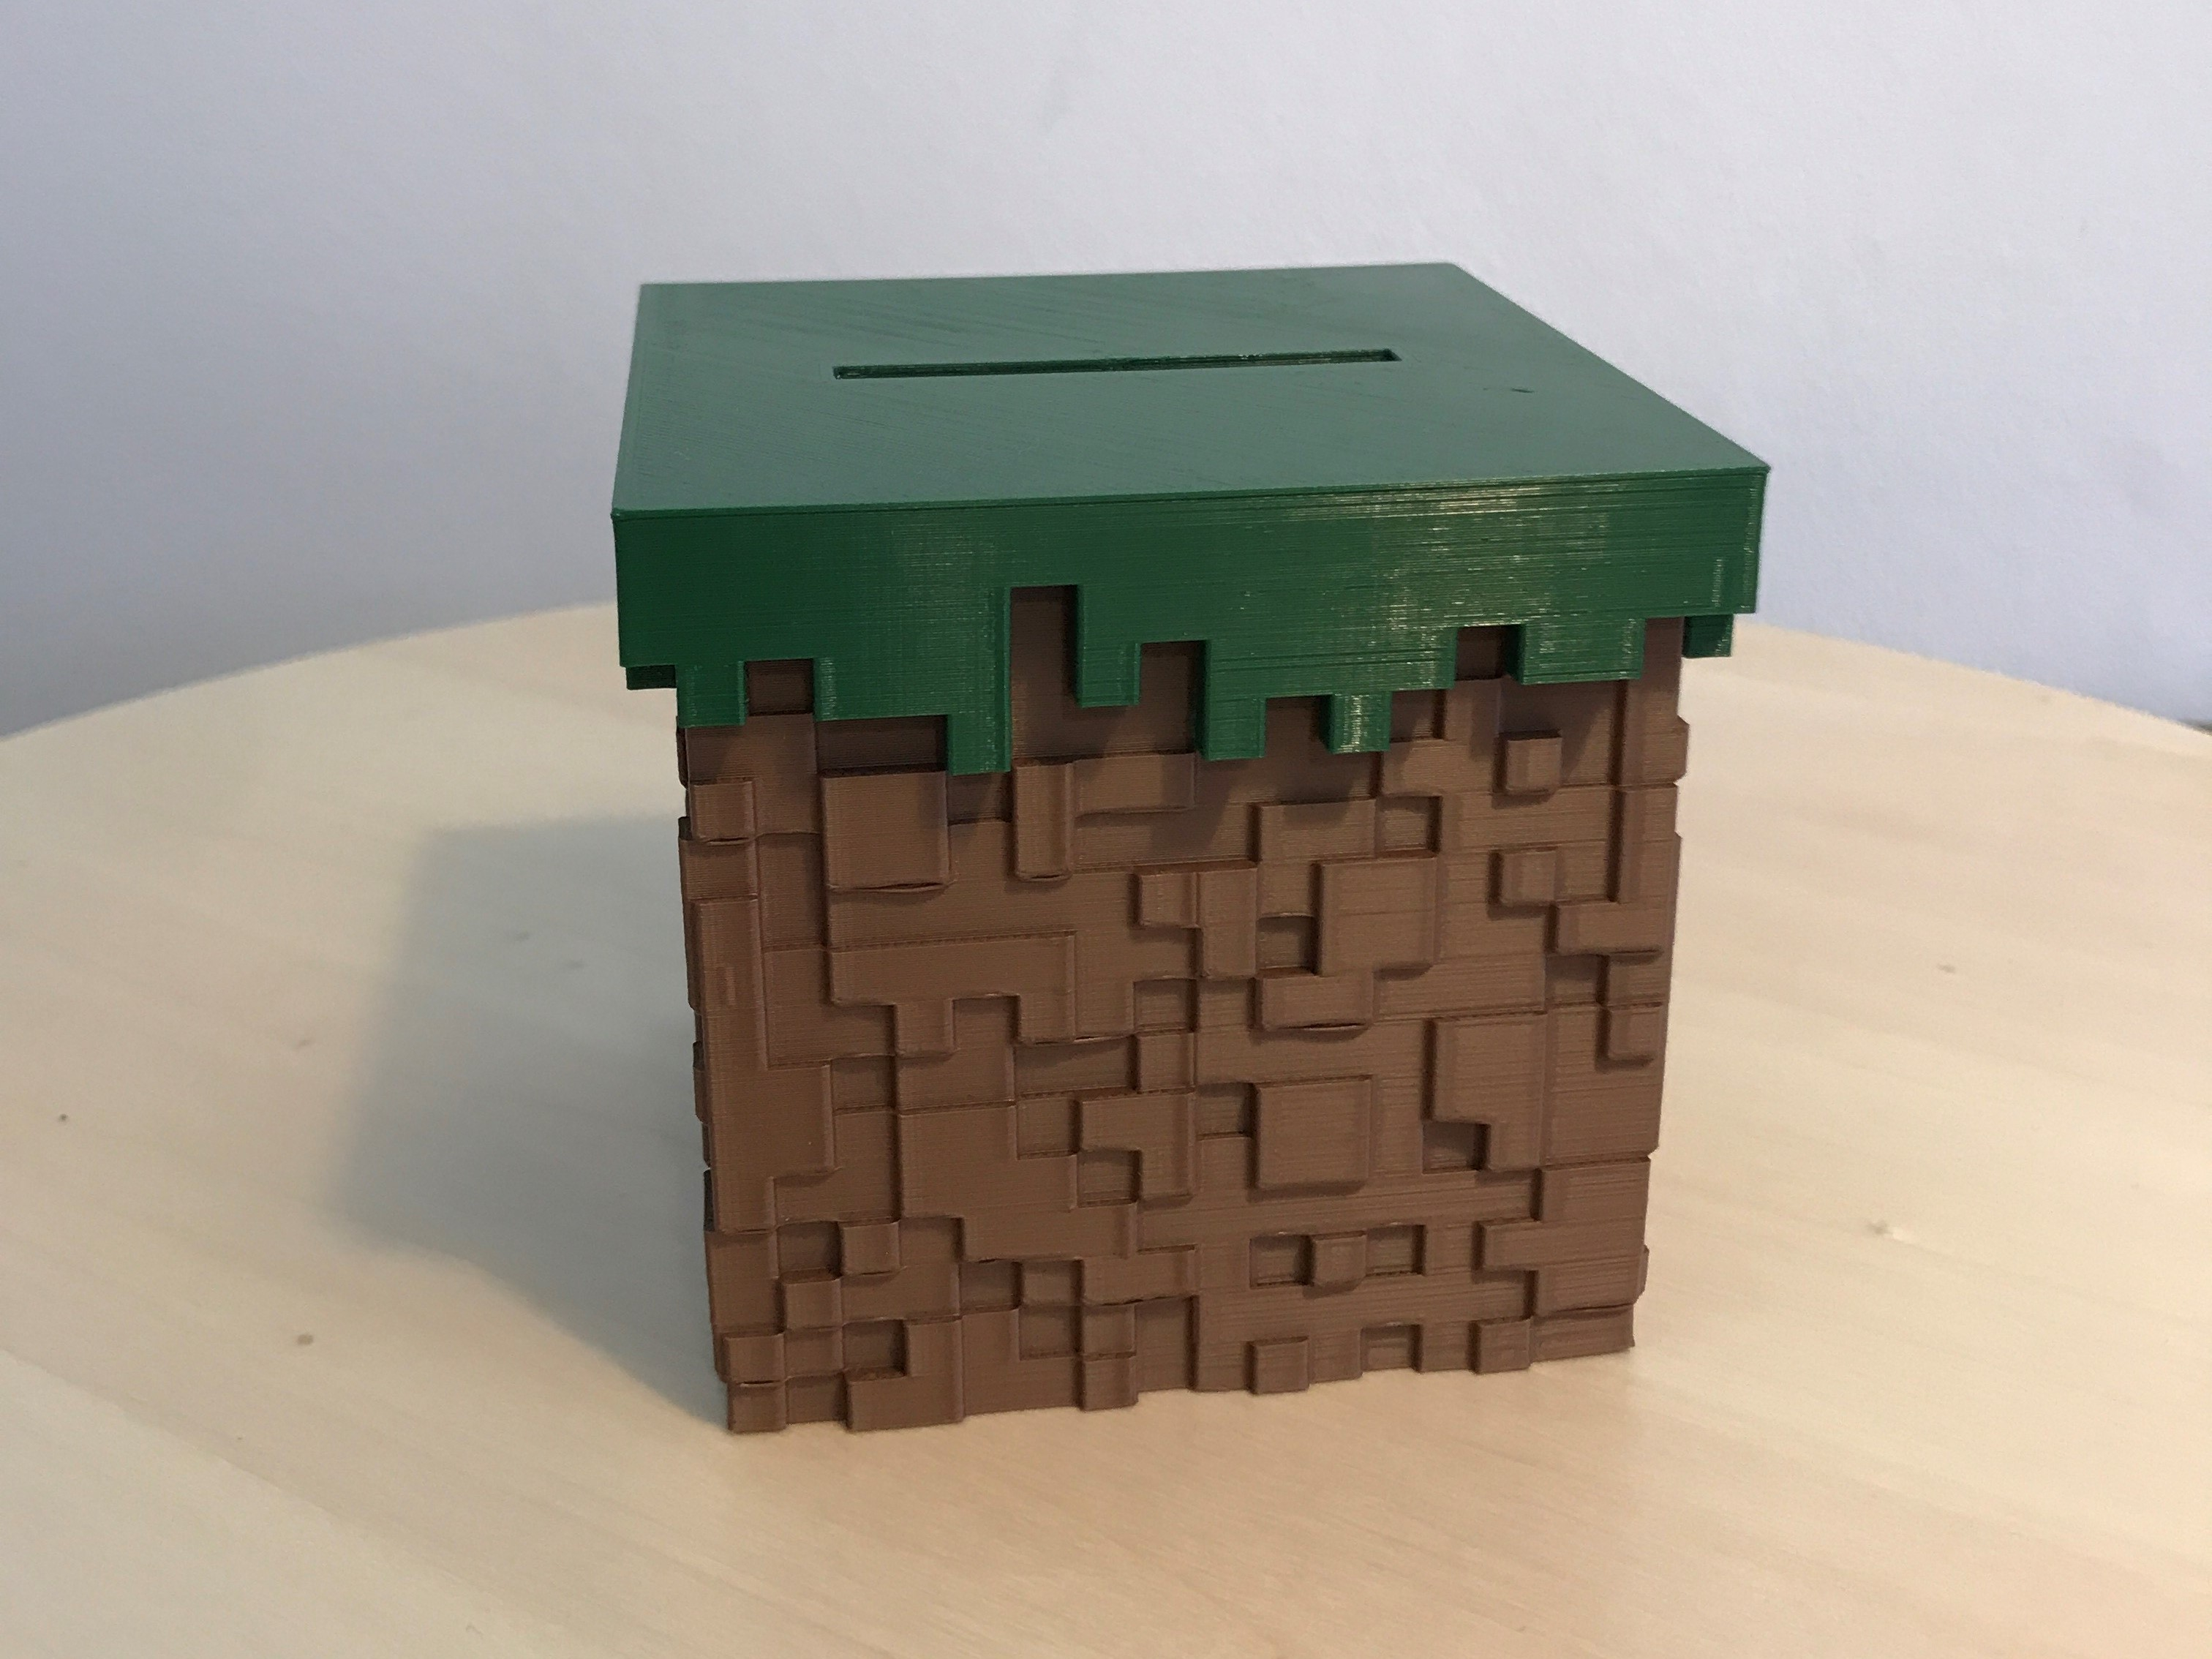 08.jpg Download free STL file Minecraft Grass Block Money Bank • 3D printing template, the3dsmith